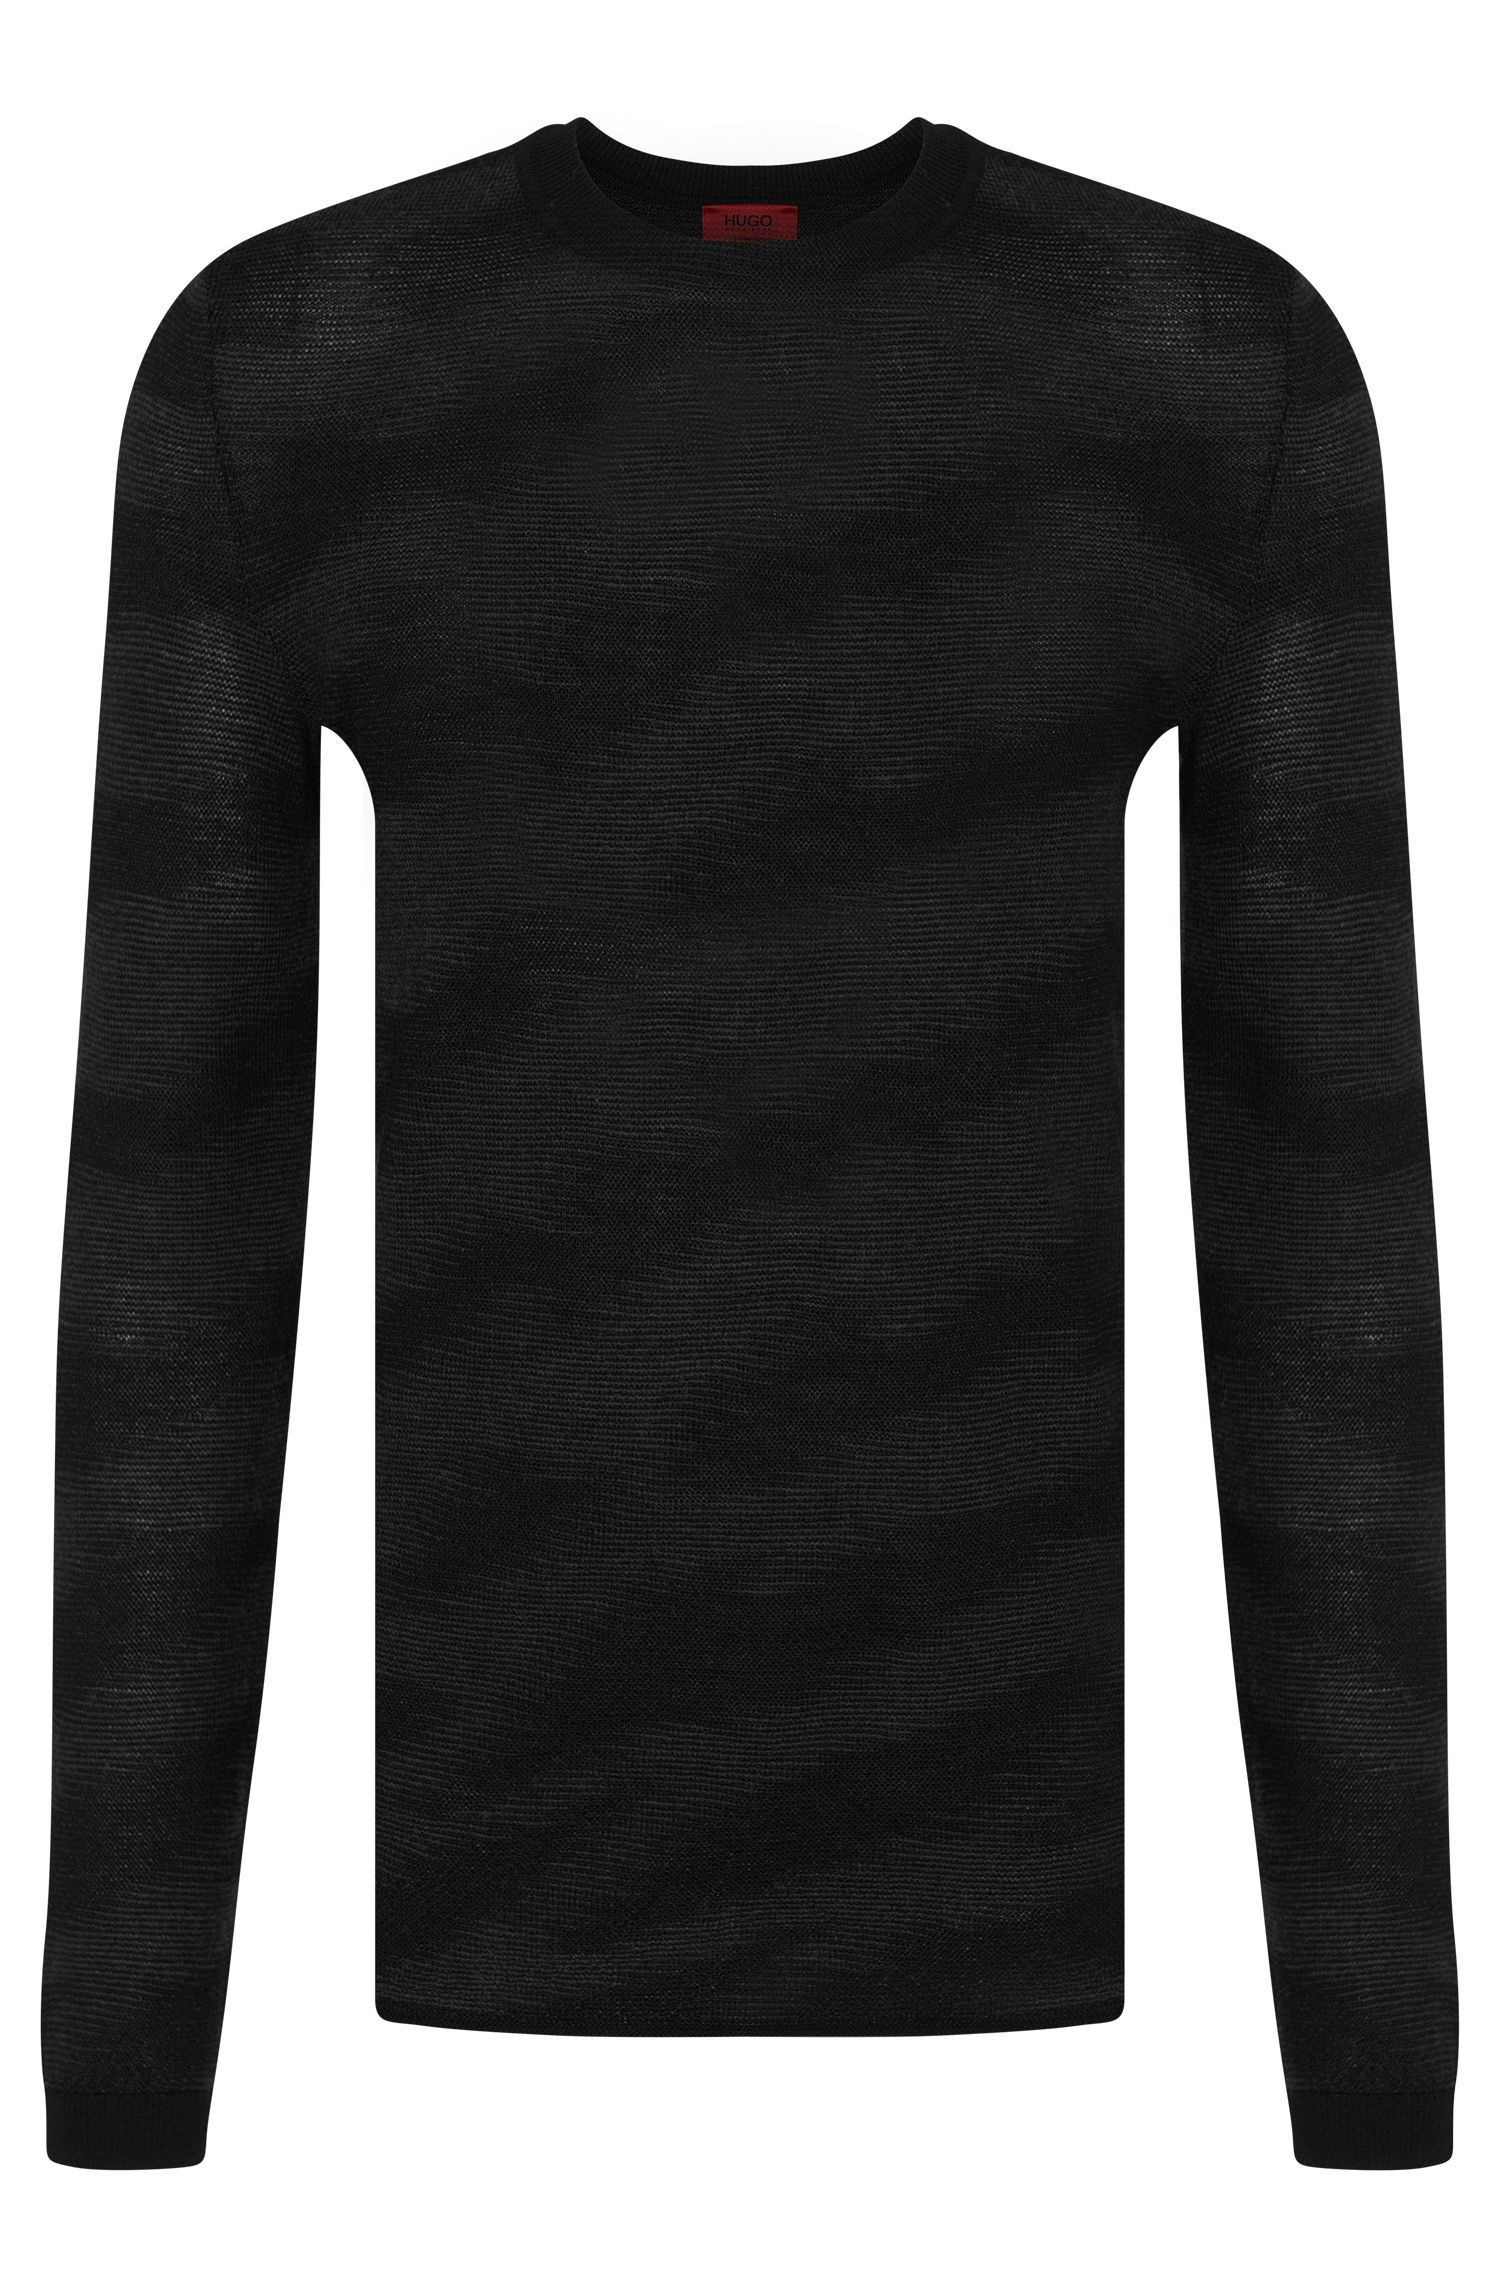 'Savo' | Merino Virgin Wool Sweater